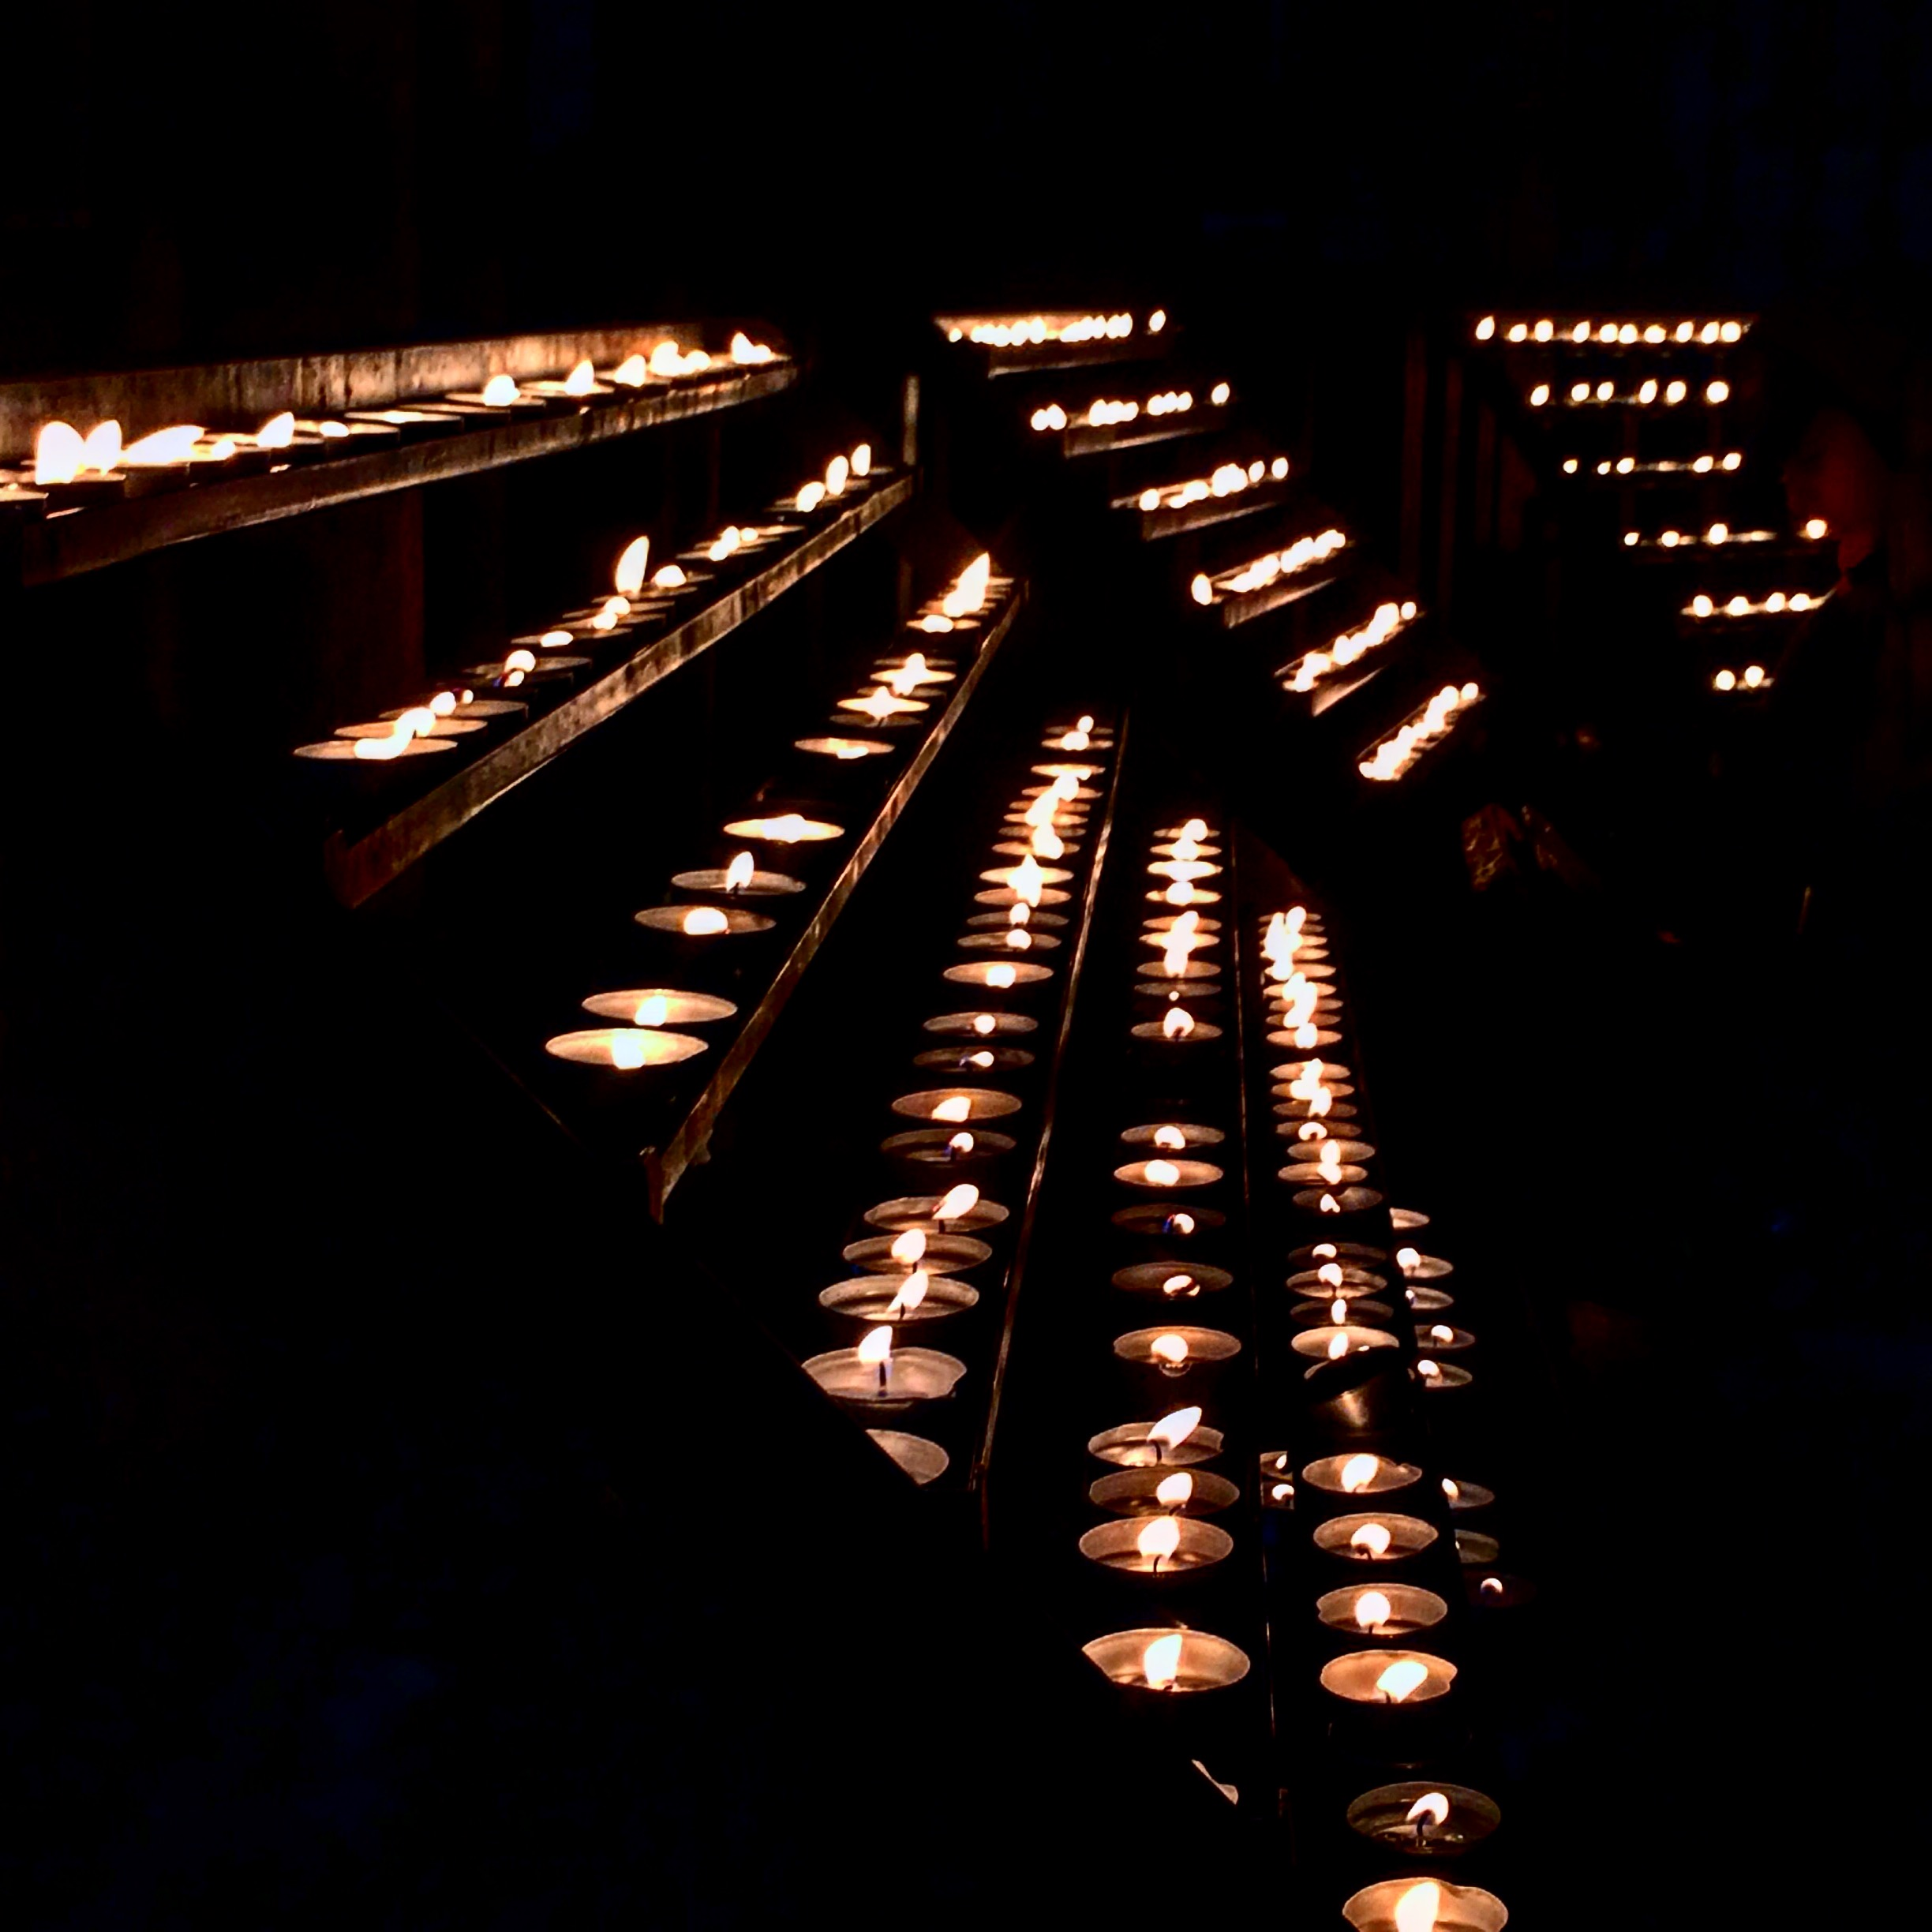 5,000 Candles In The Wind. (Little Sebastian, we miss you every day.)